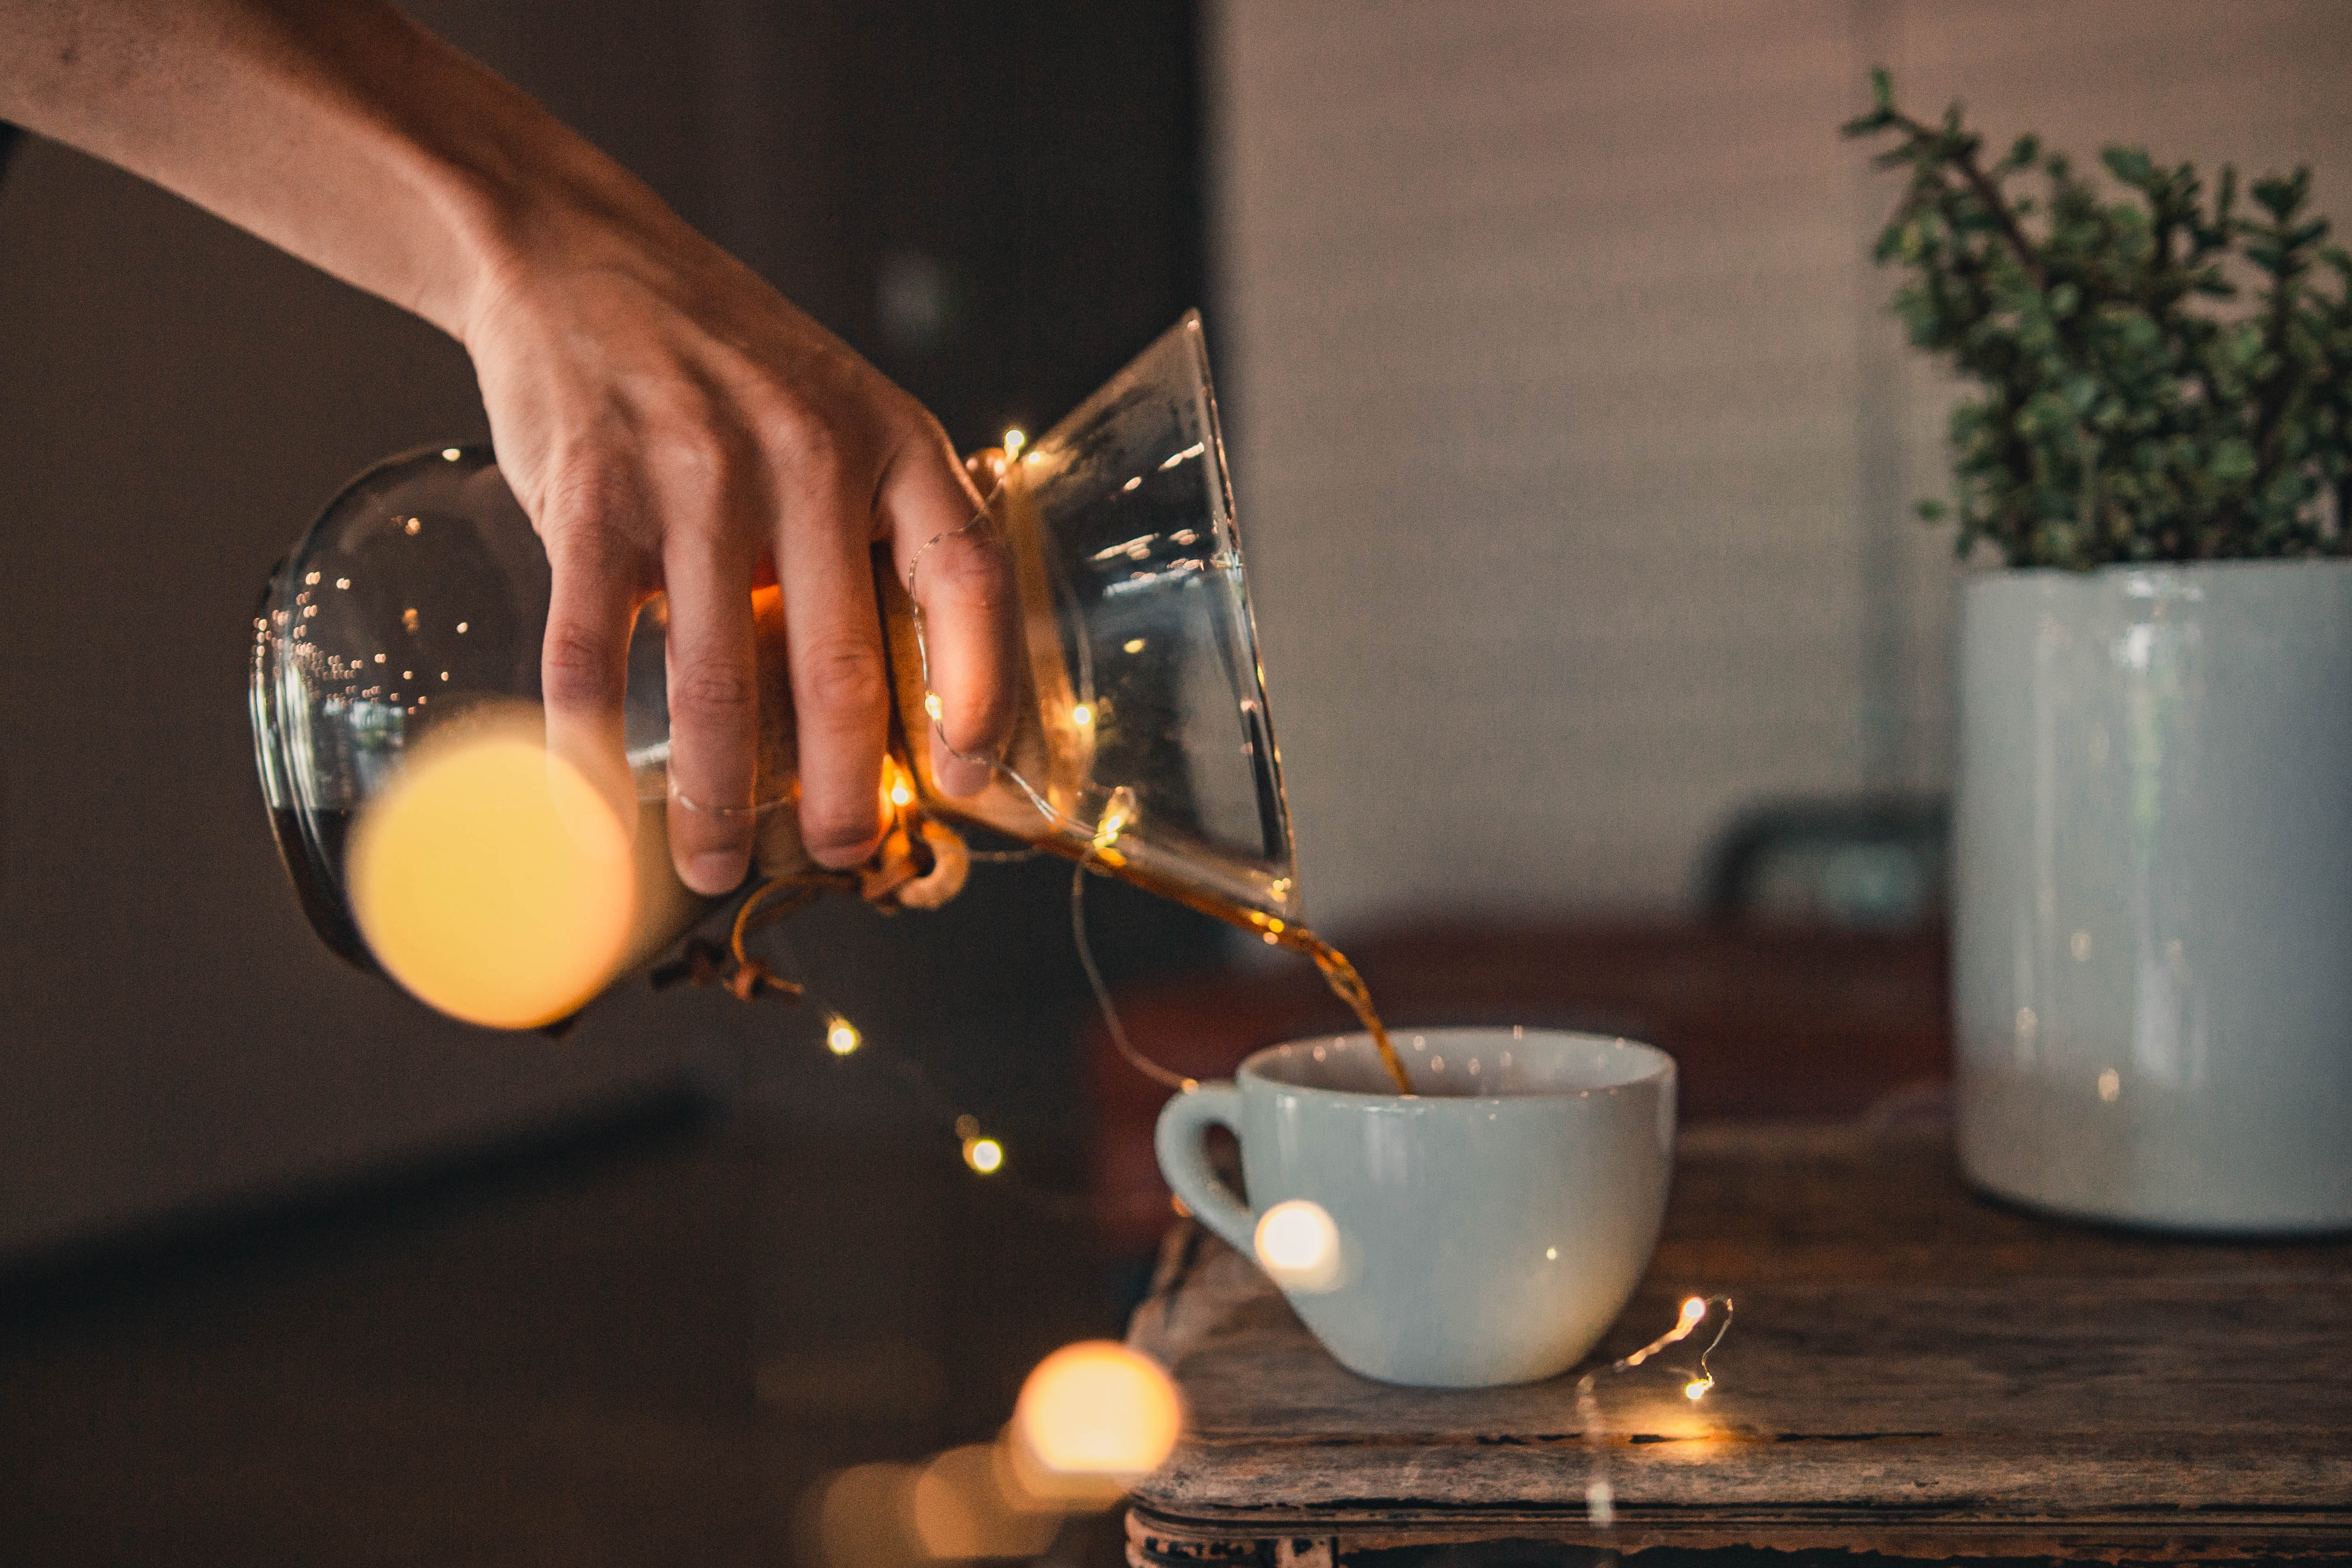 person pouring coffee on white teacup